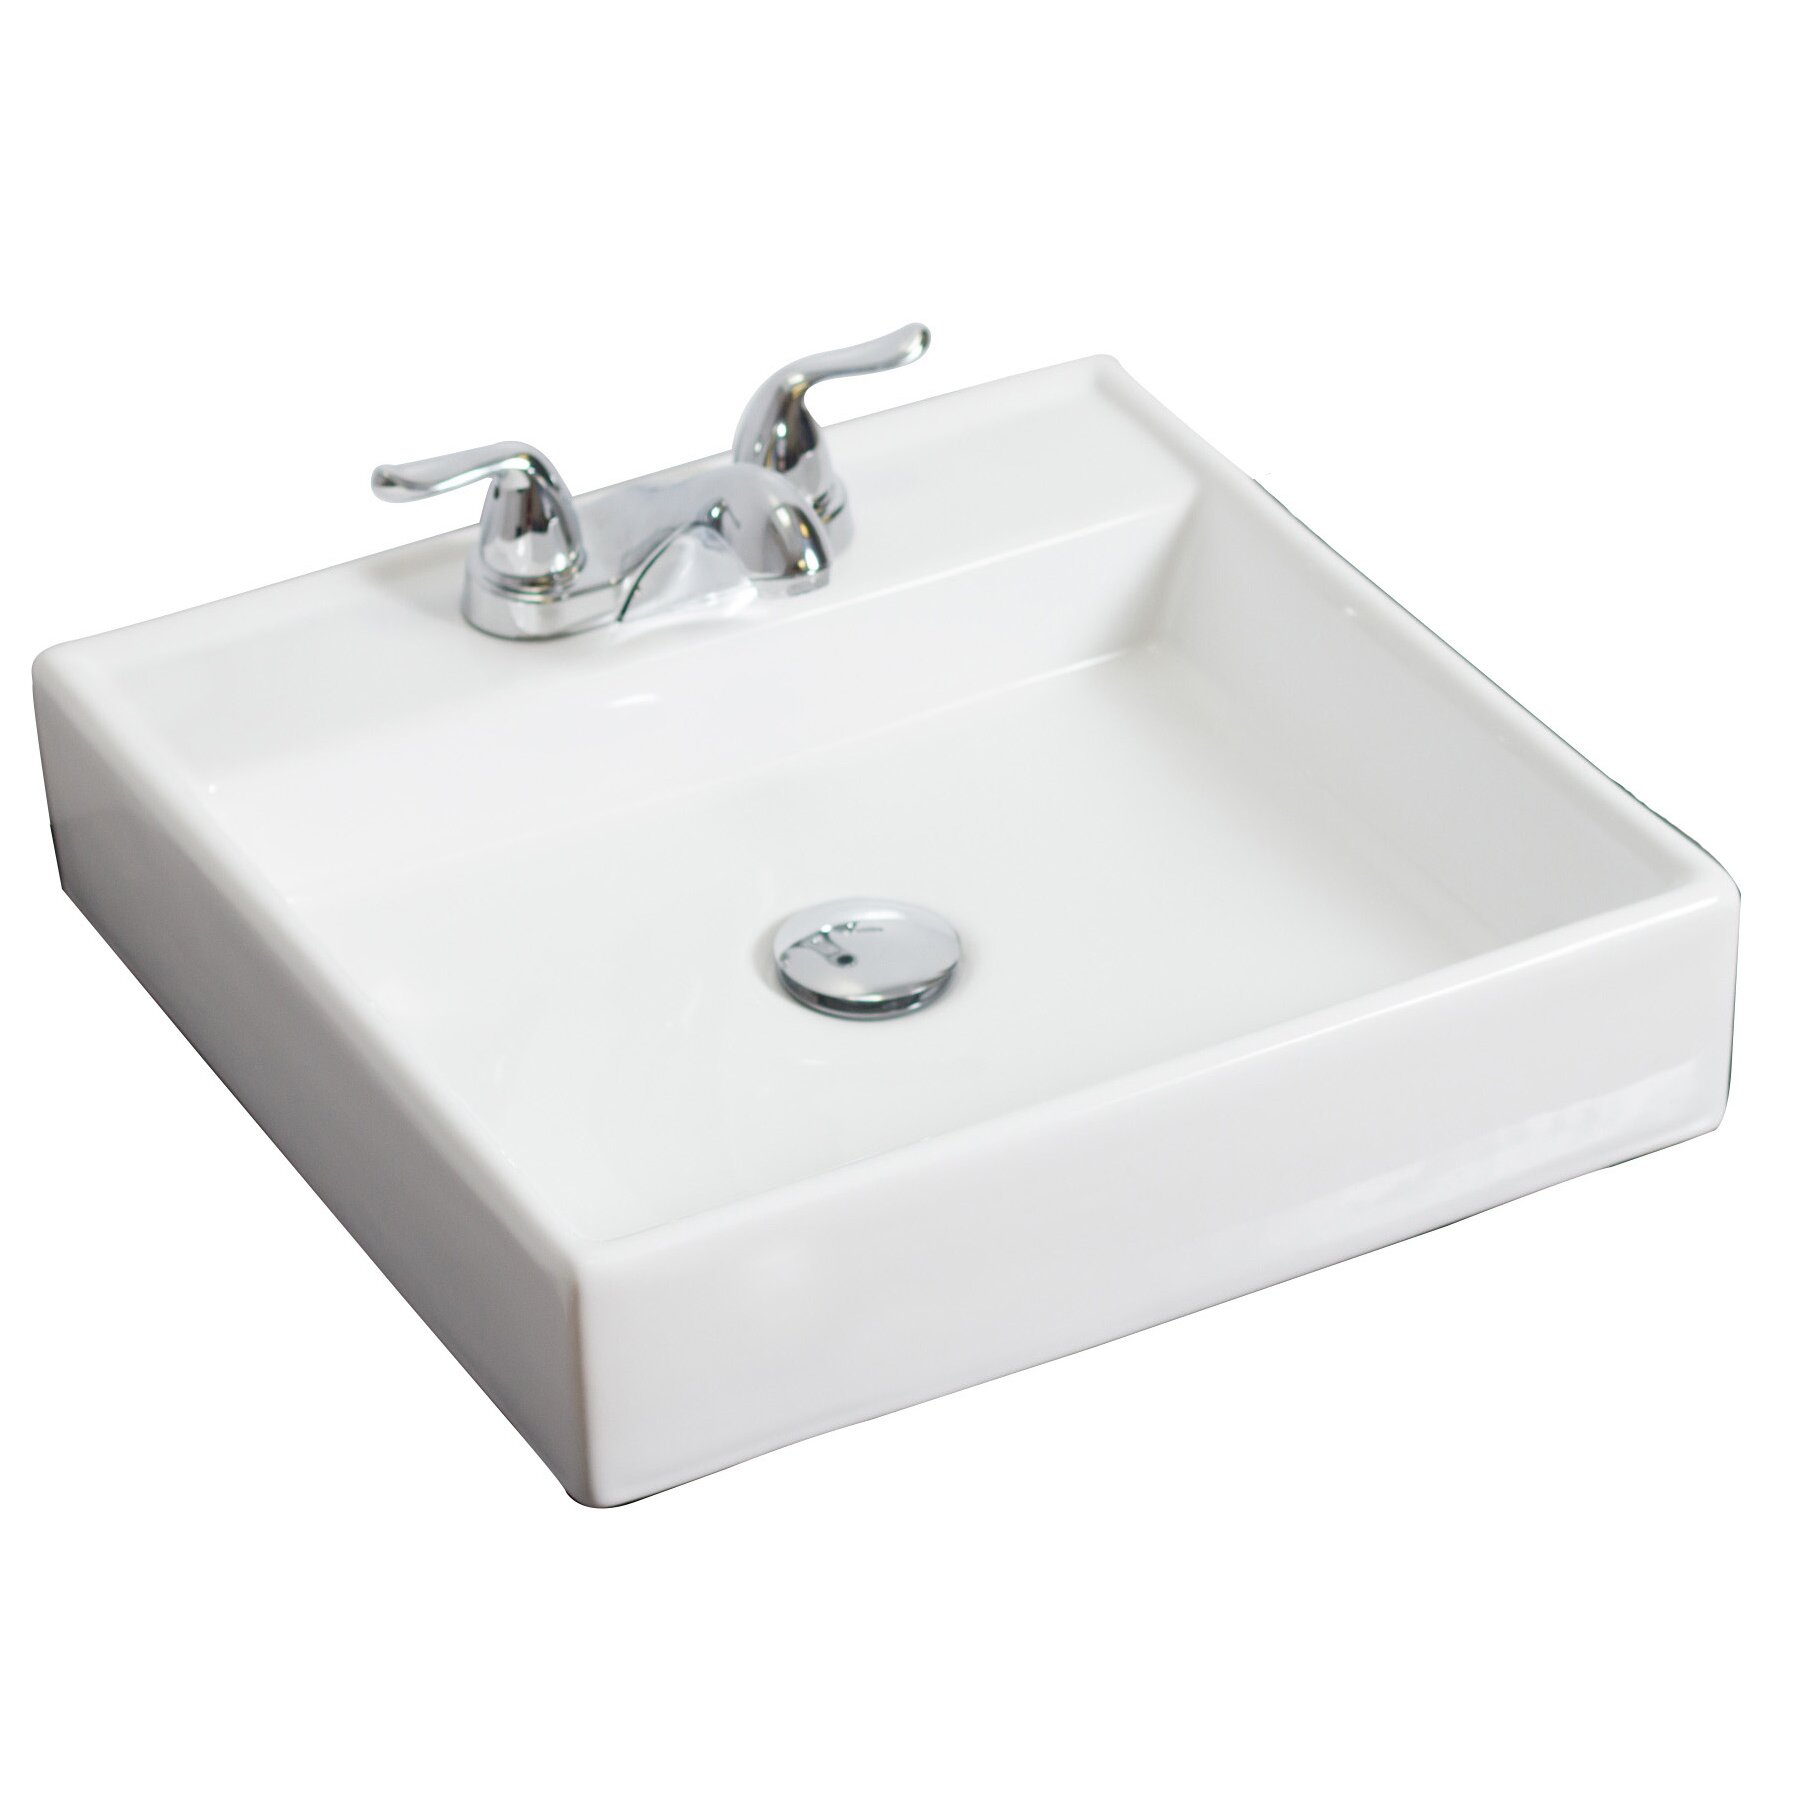 American imaginations above counter square vessel bathroom sink reviews wayfair for Above counter bathroom sinks glass